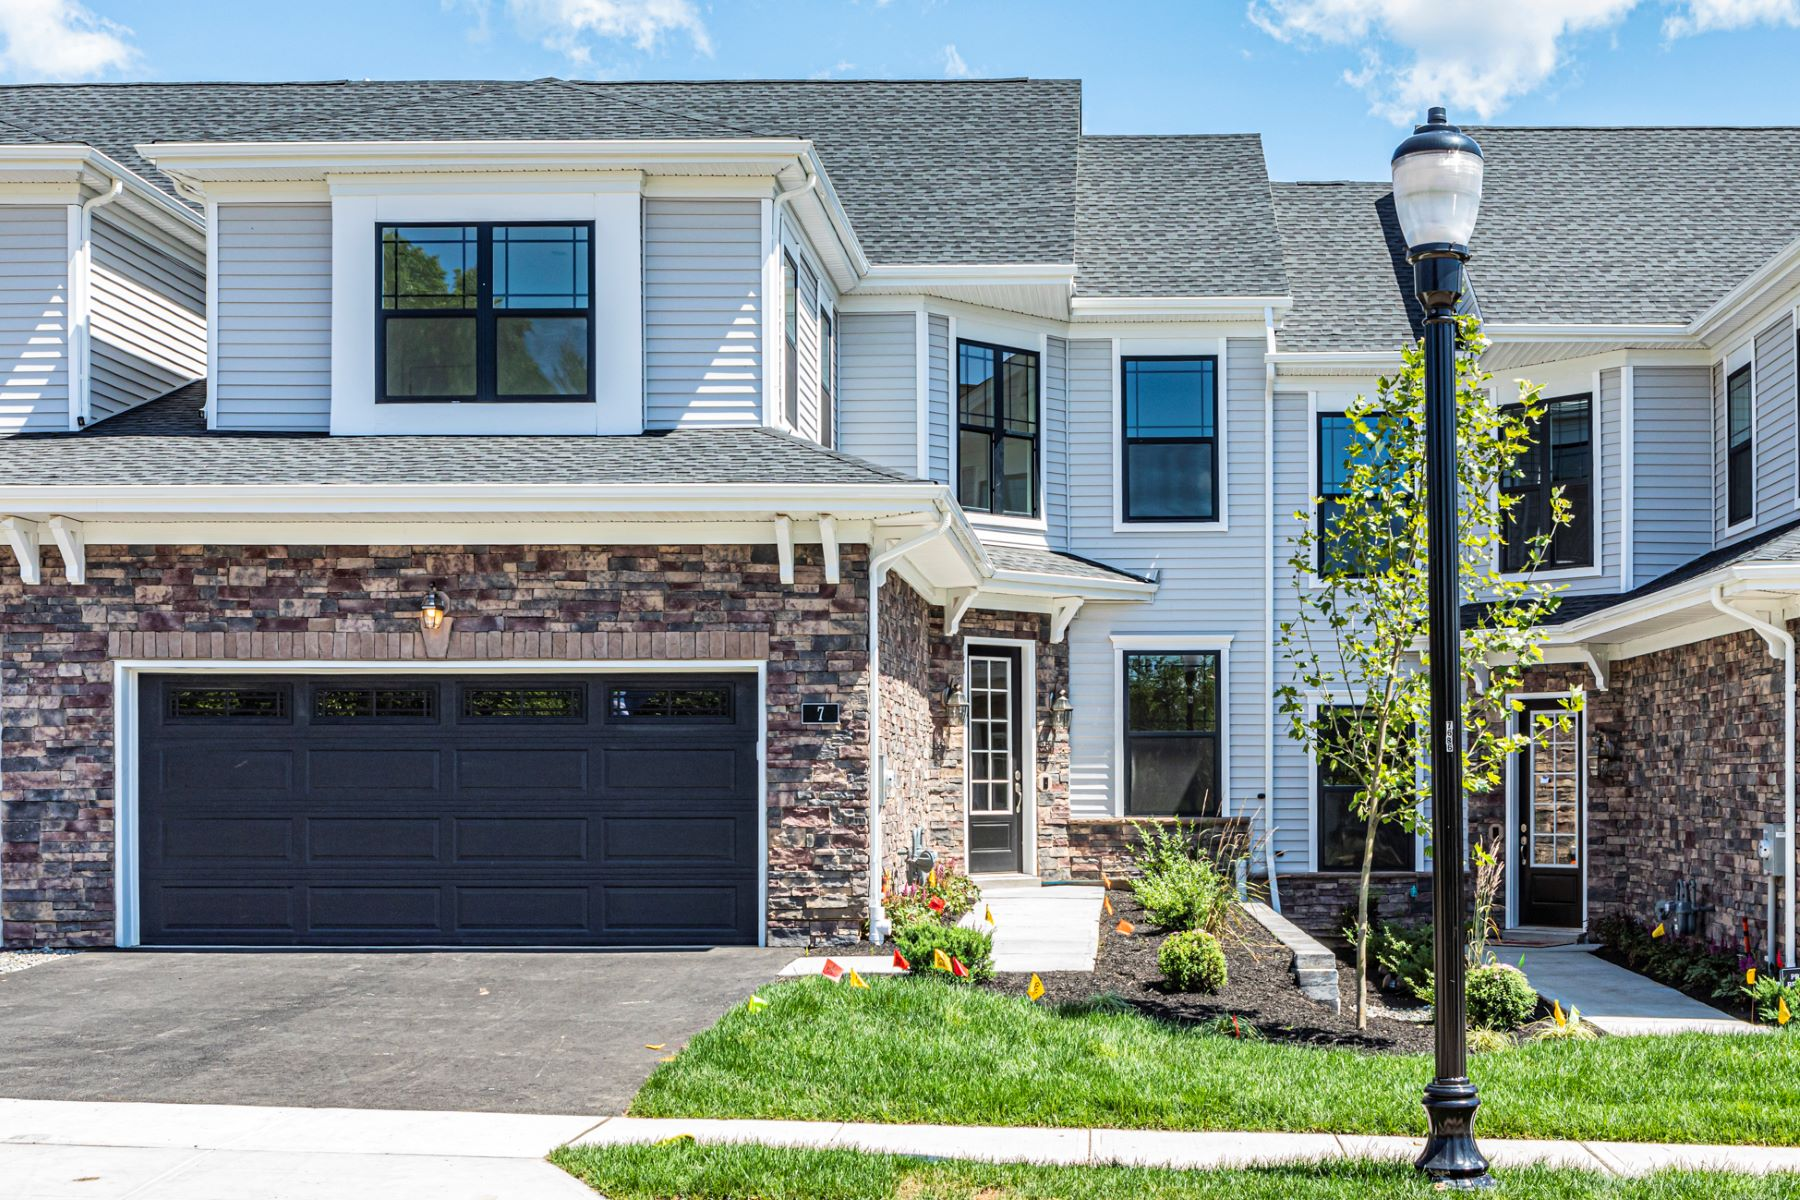 townhouses for Sale at Ease Into Luxury at Cobblestone Creek 15 Dogleg Lane, Lawrenceville, New Jersey 08648 United States